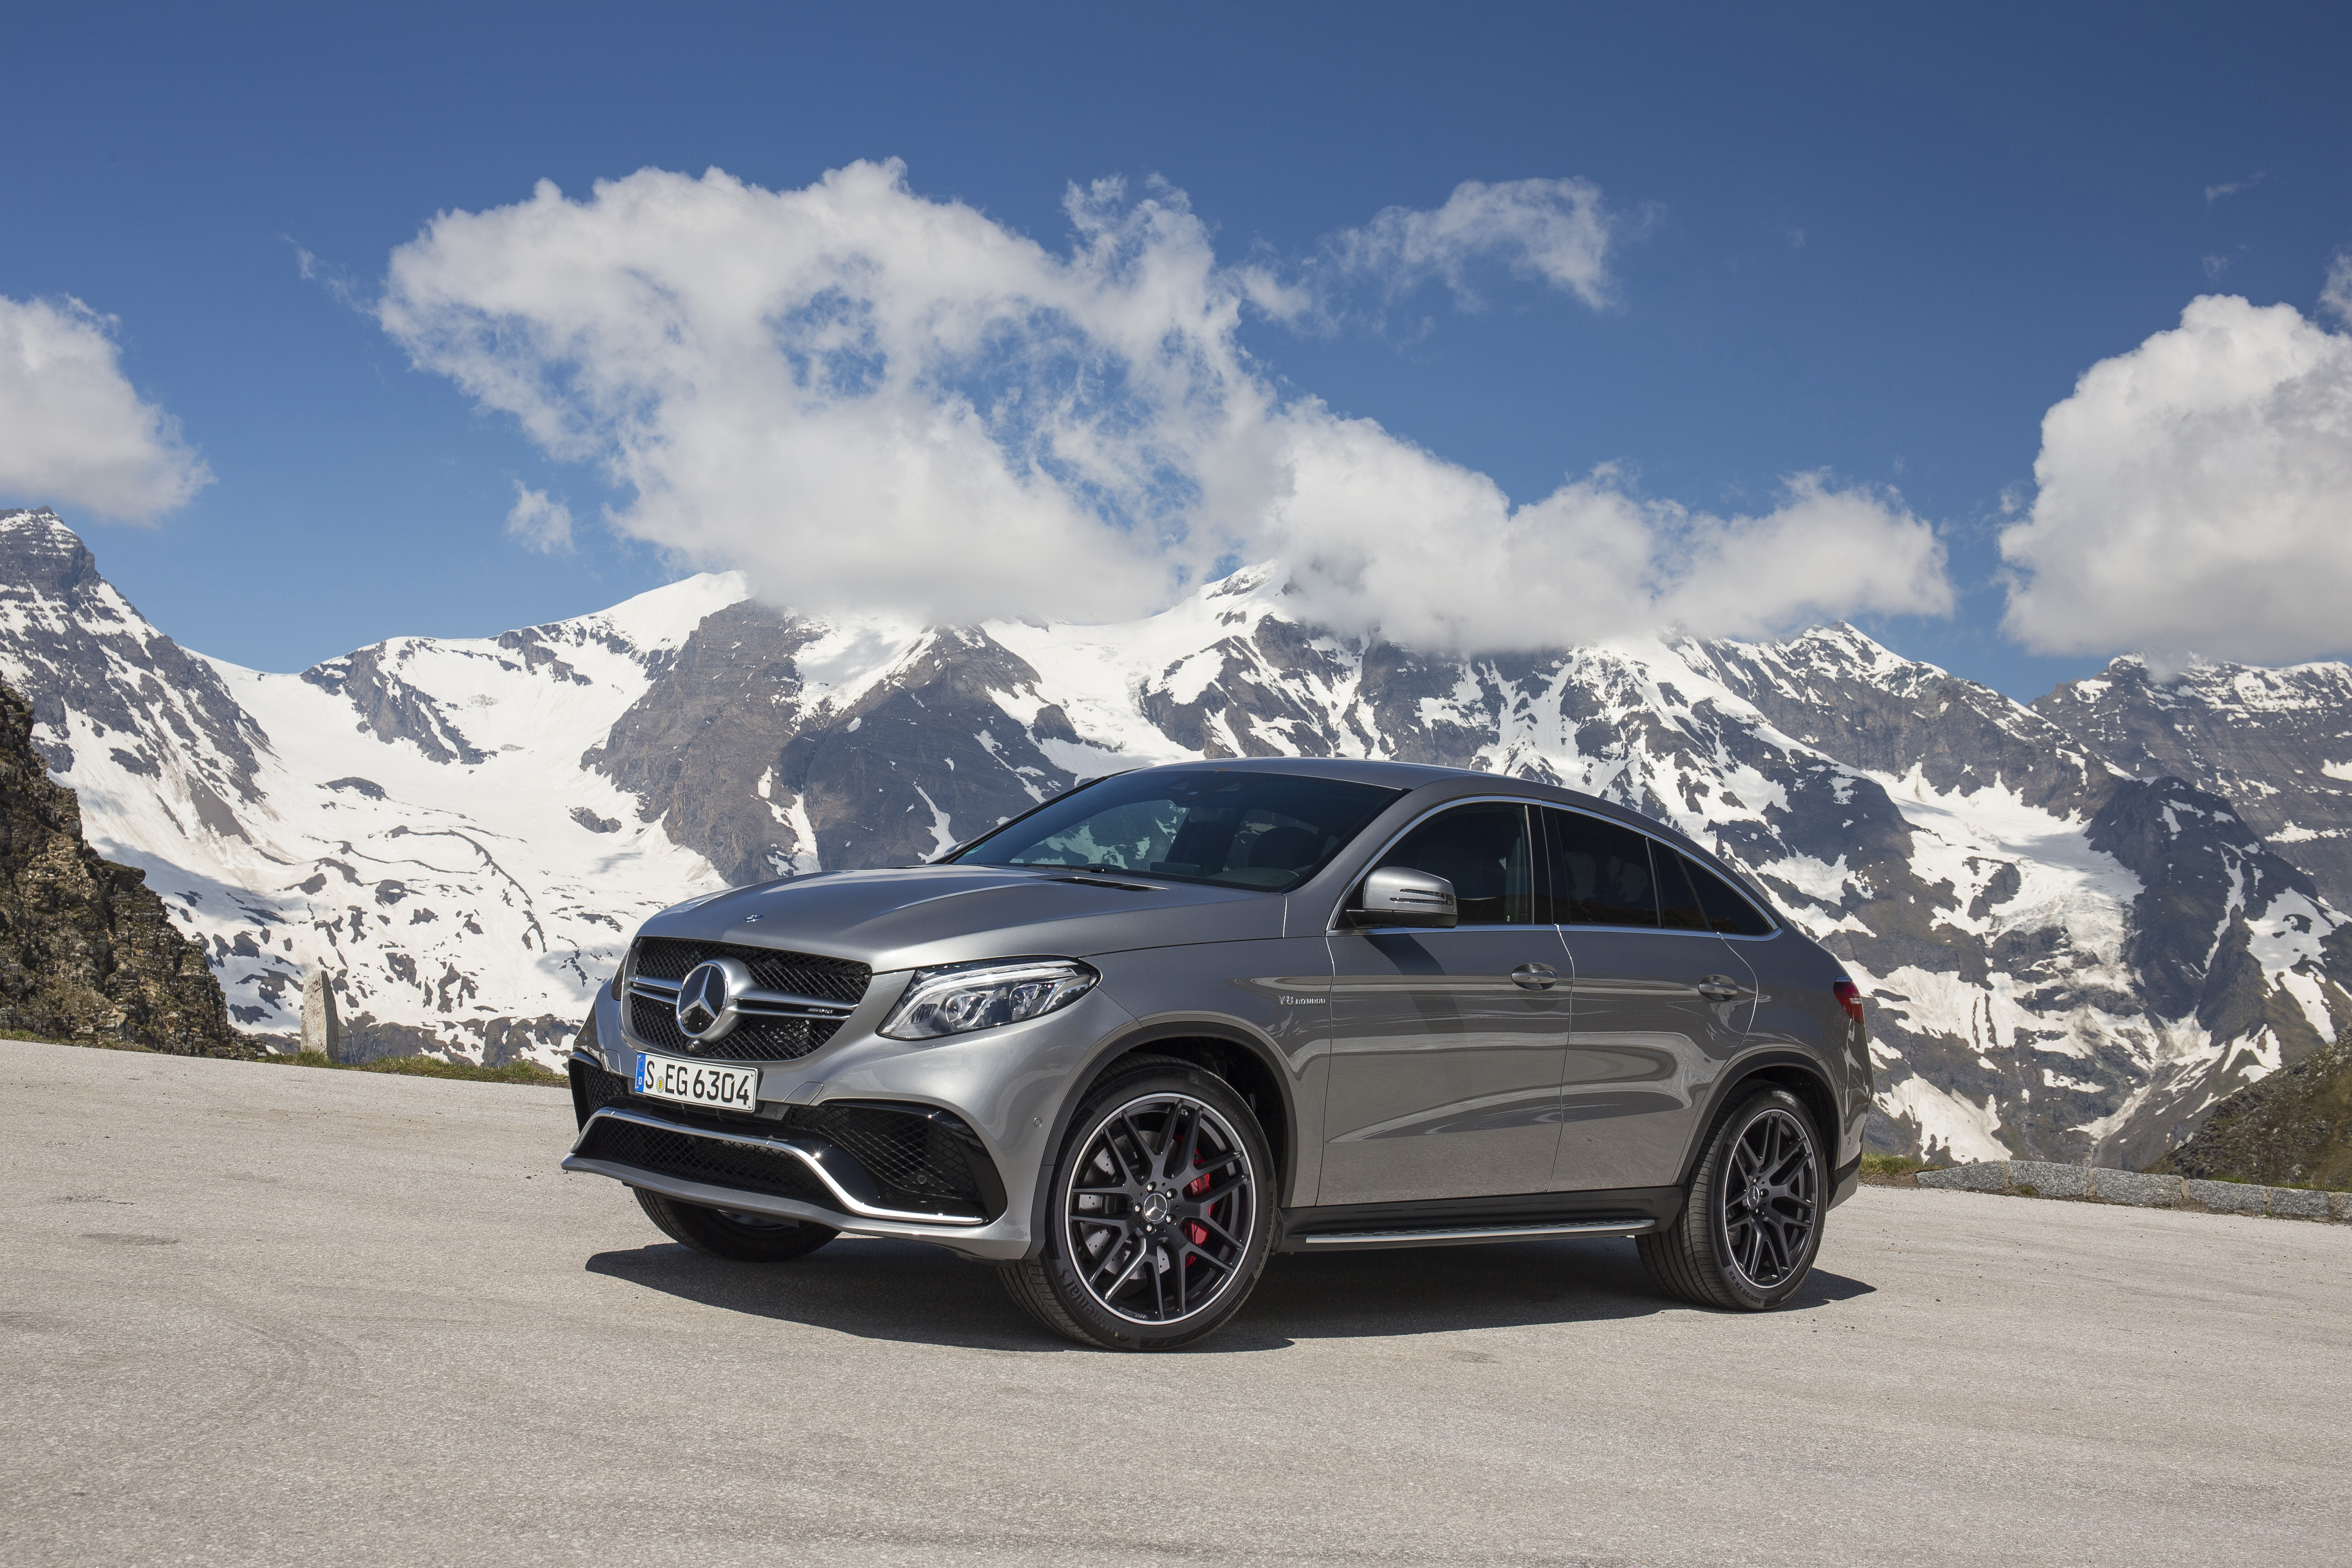 Mercedes Benz Gle Coupe Pricing And Specifications Caradvice